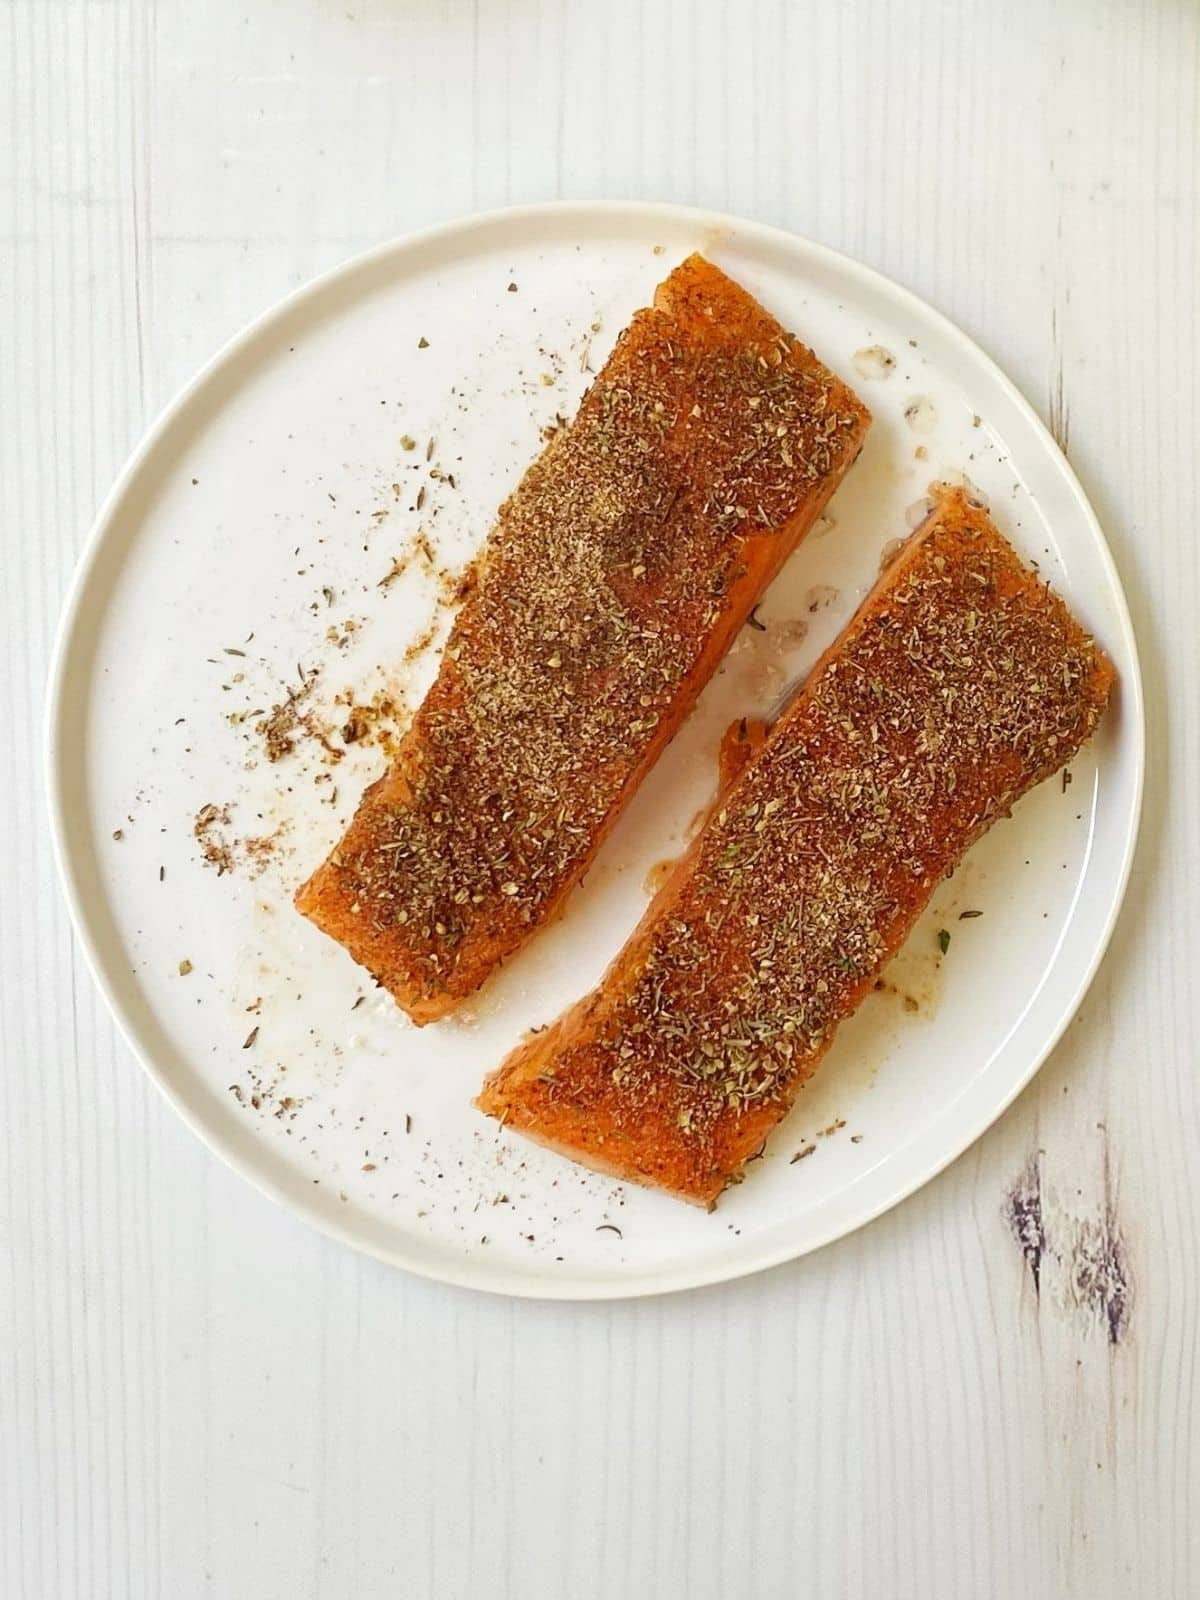 raw salmon coated with spice mixture